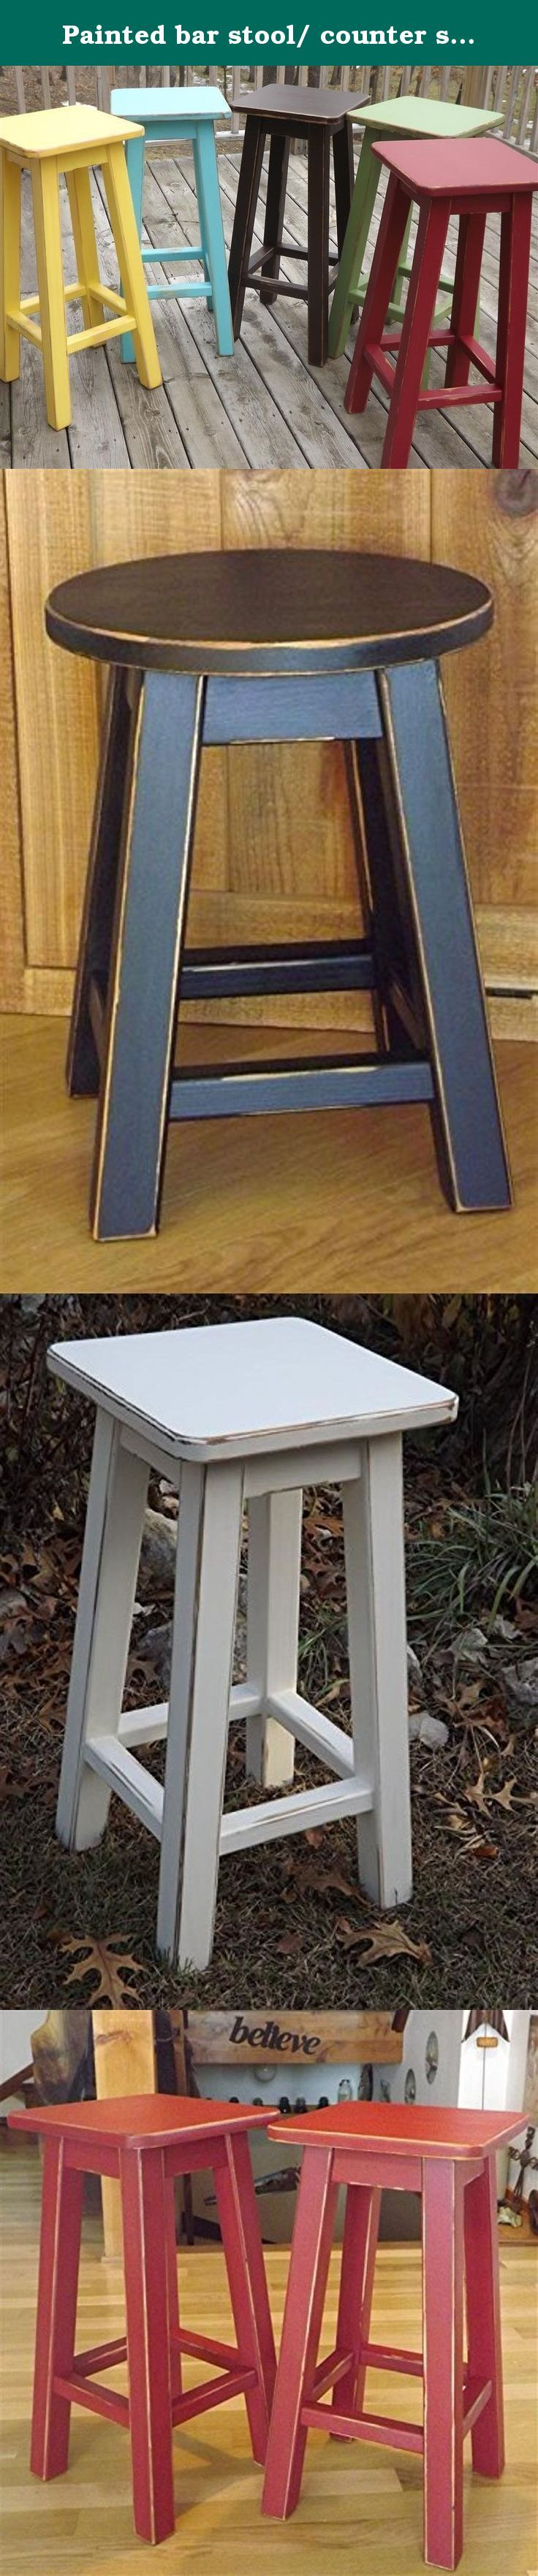 1000 Ideas About Painted Bar Stools On Pinterest Stool